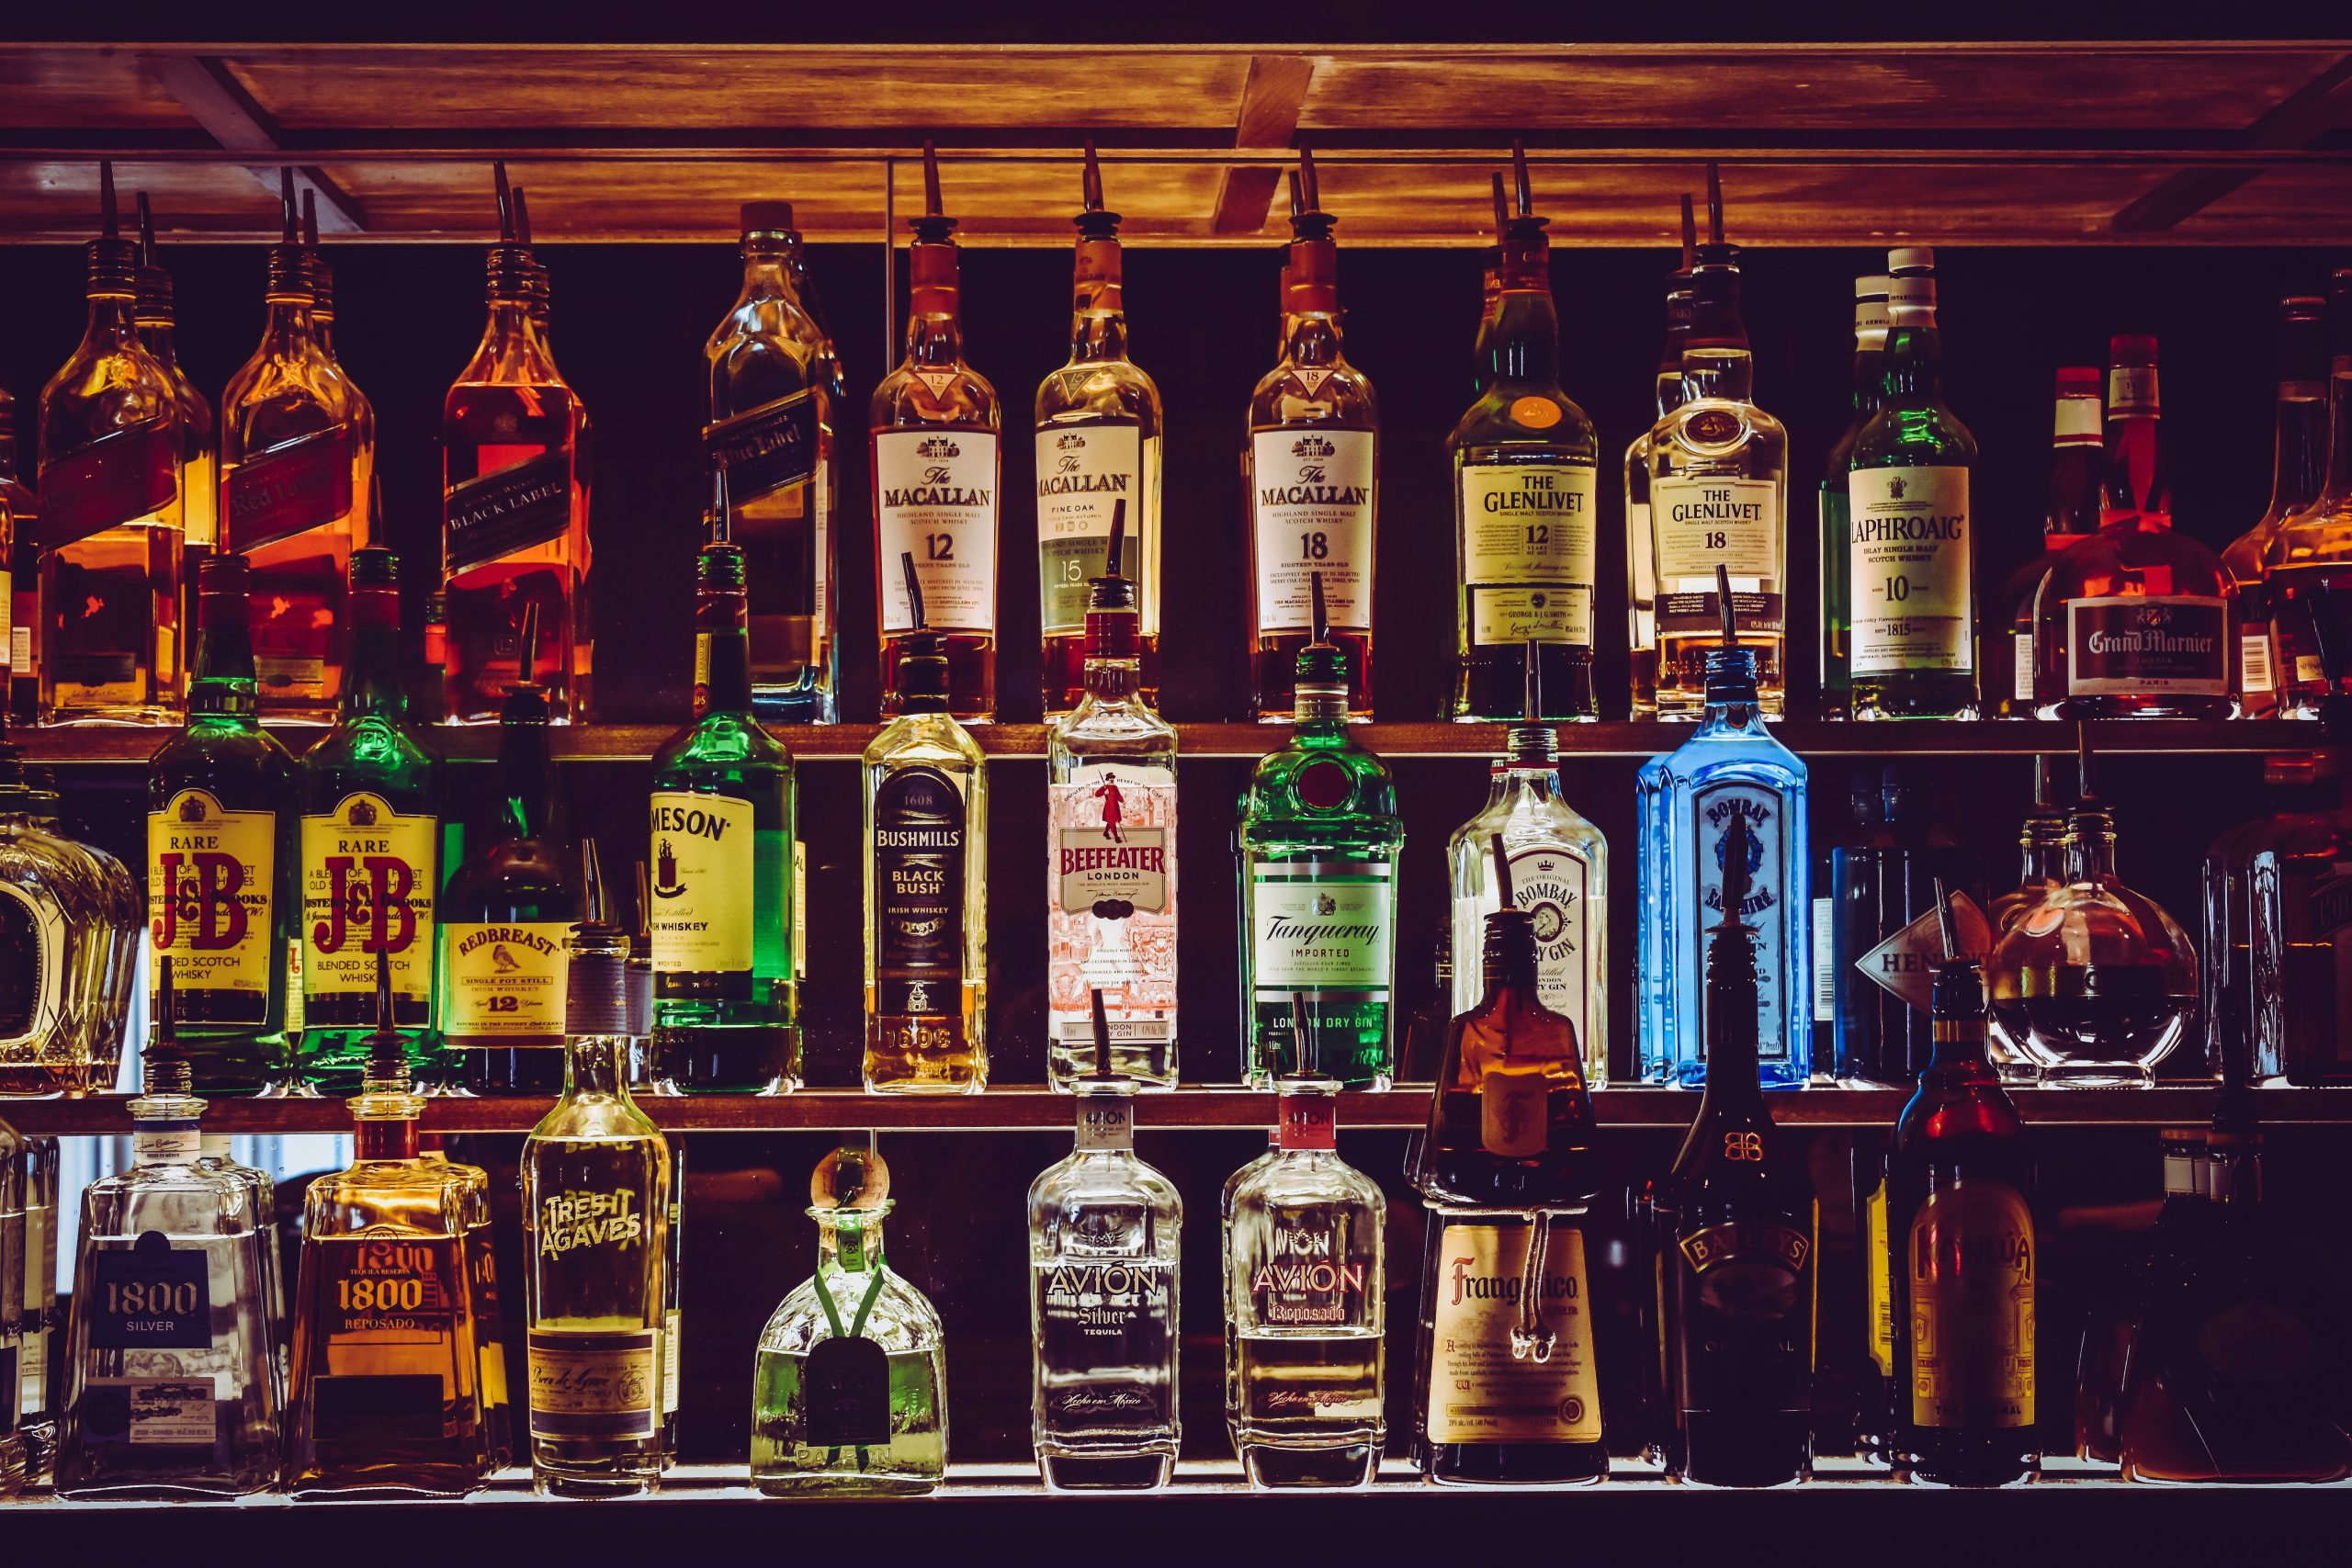 Shelves stocked with alcohol